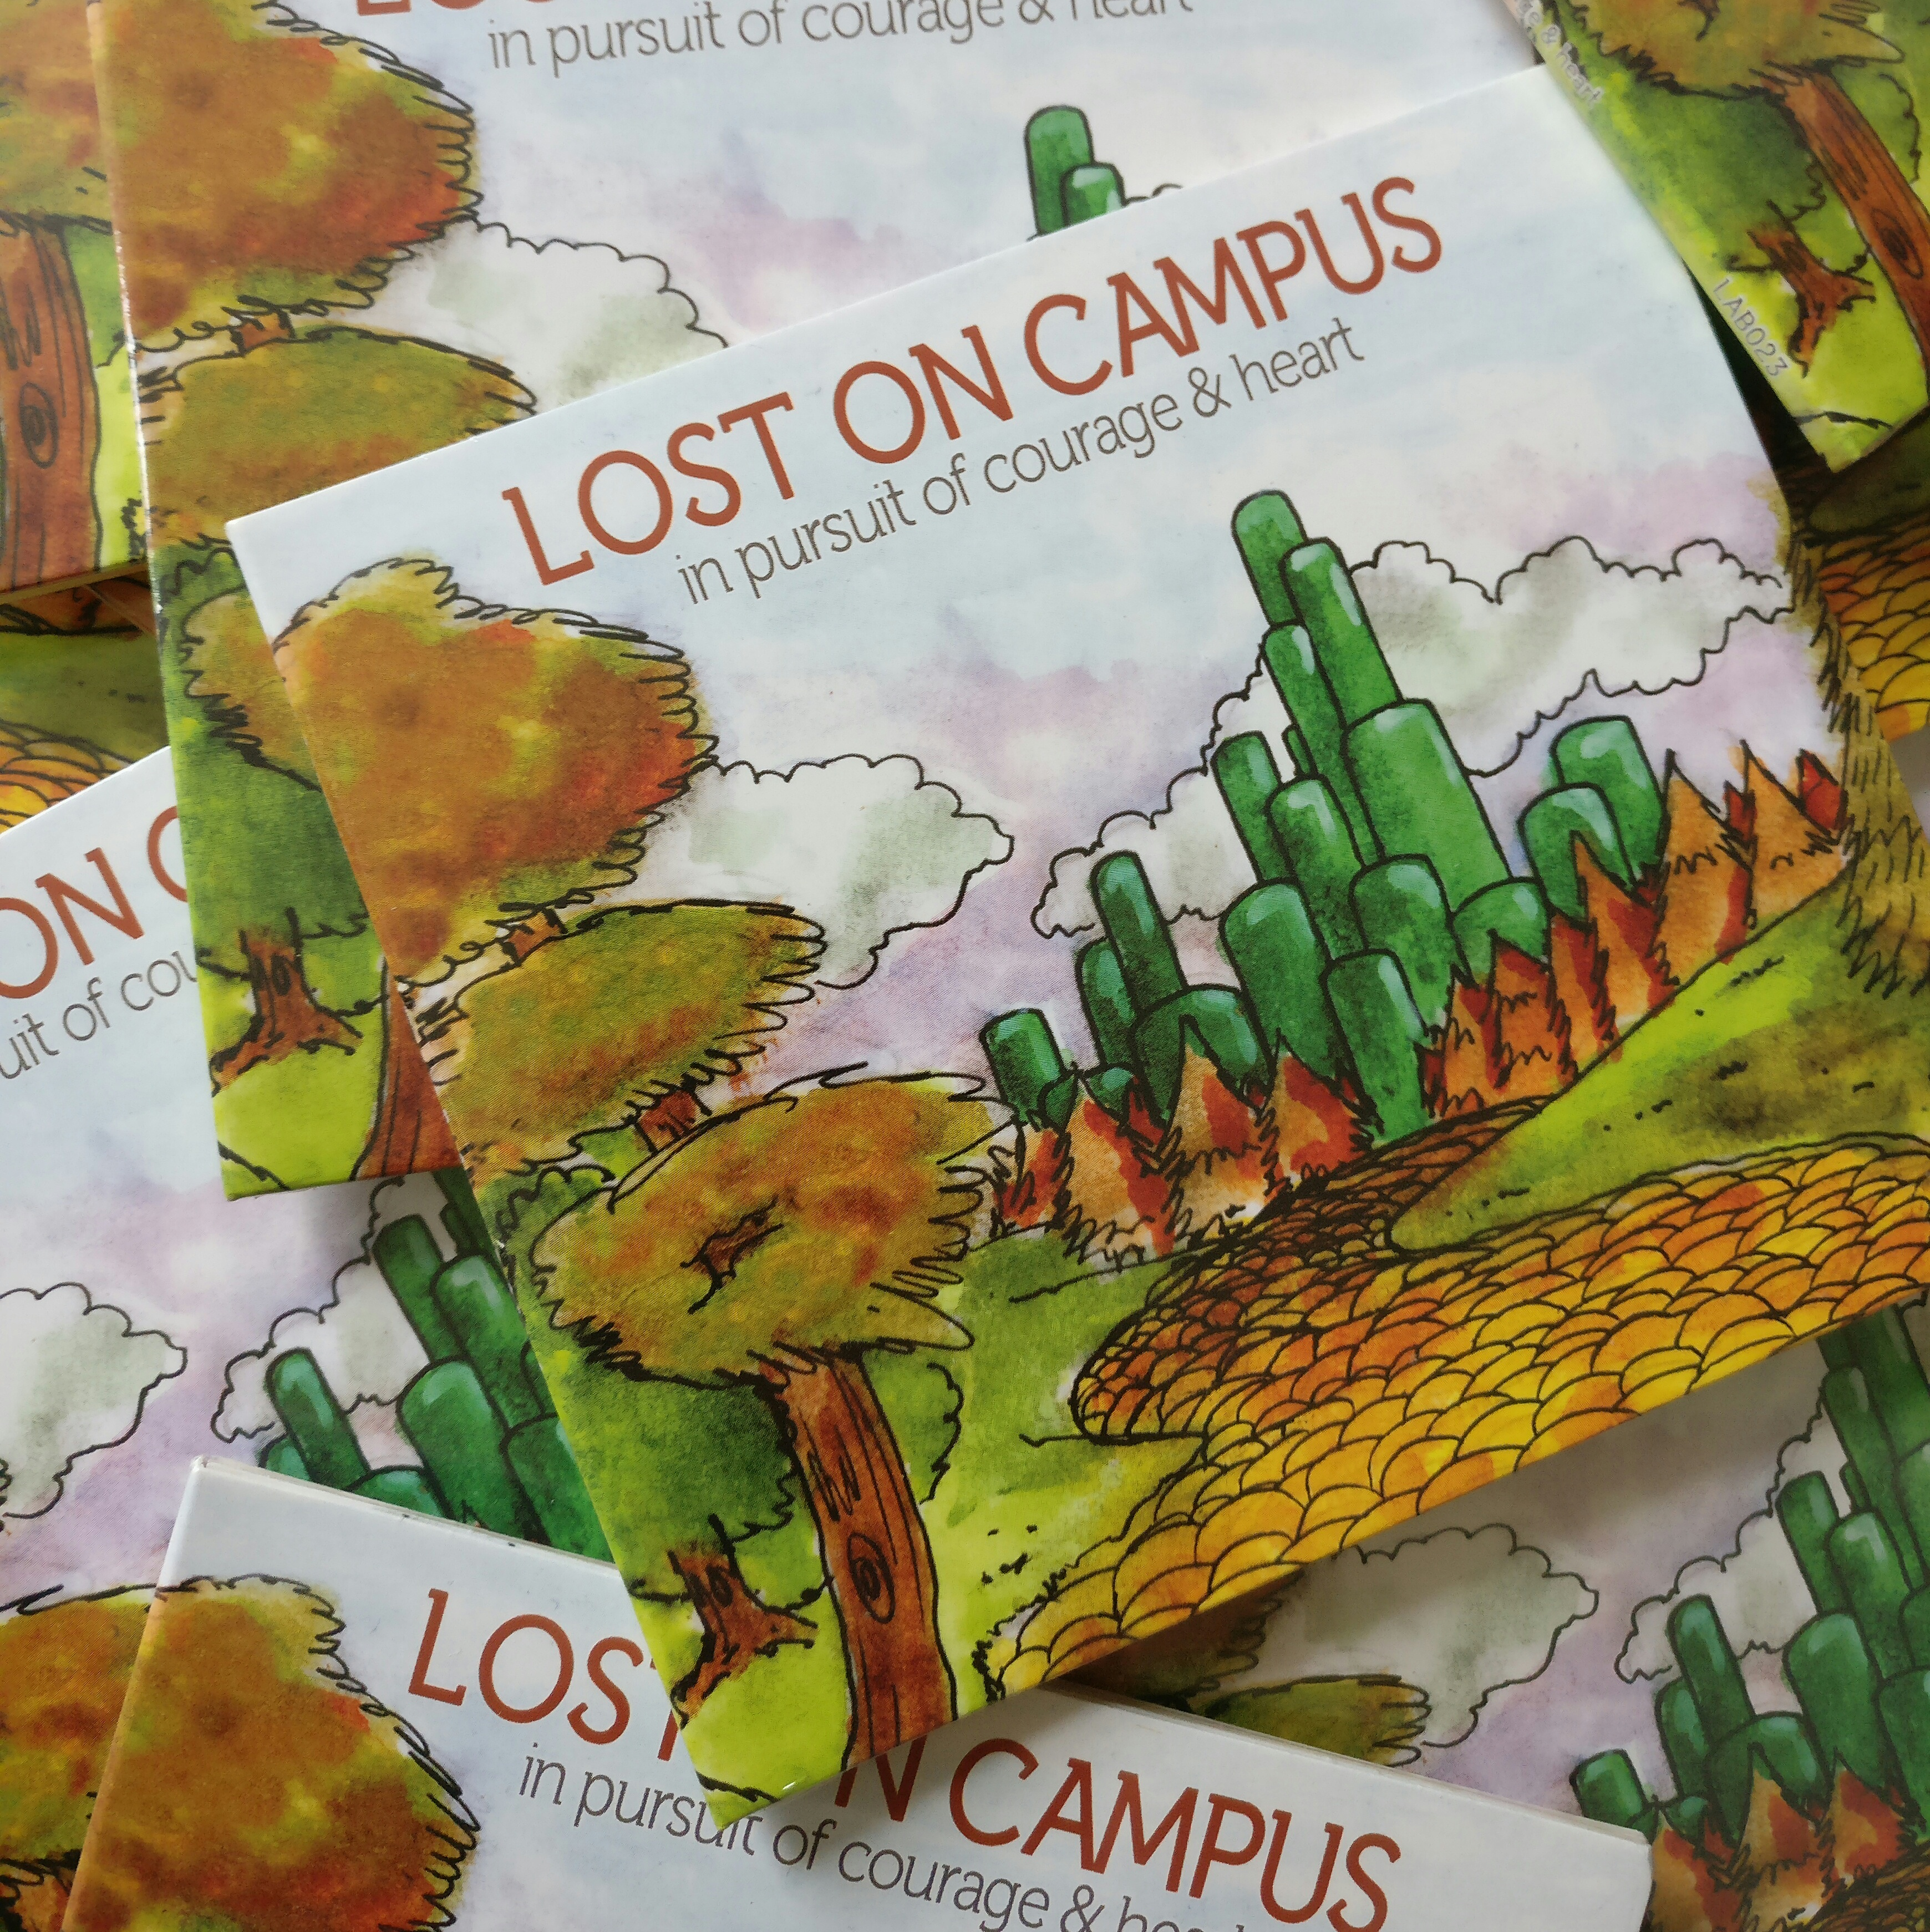 Lost On Campus - In Pursuit Of Courage & Heart EP CD